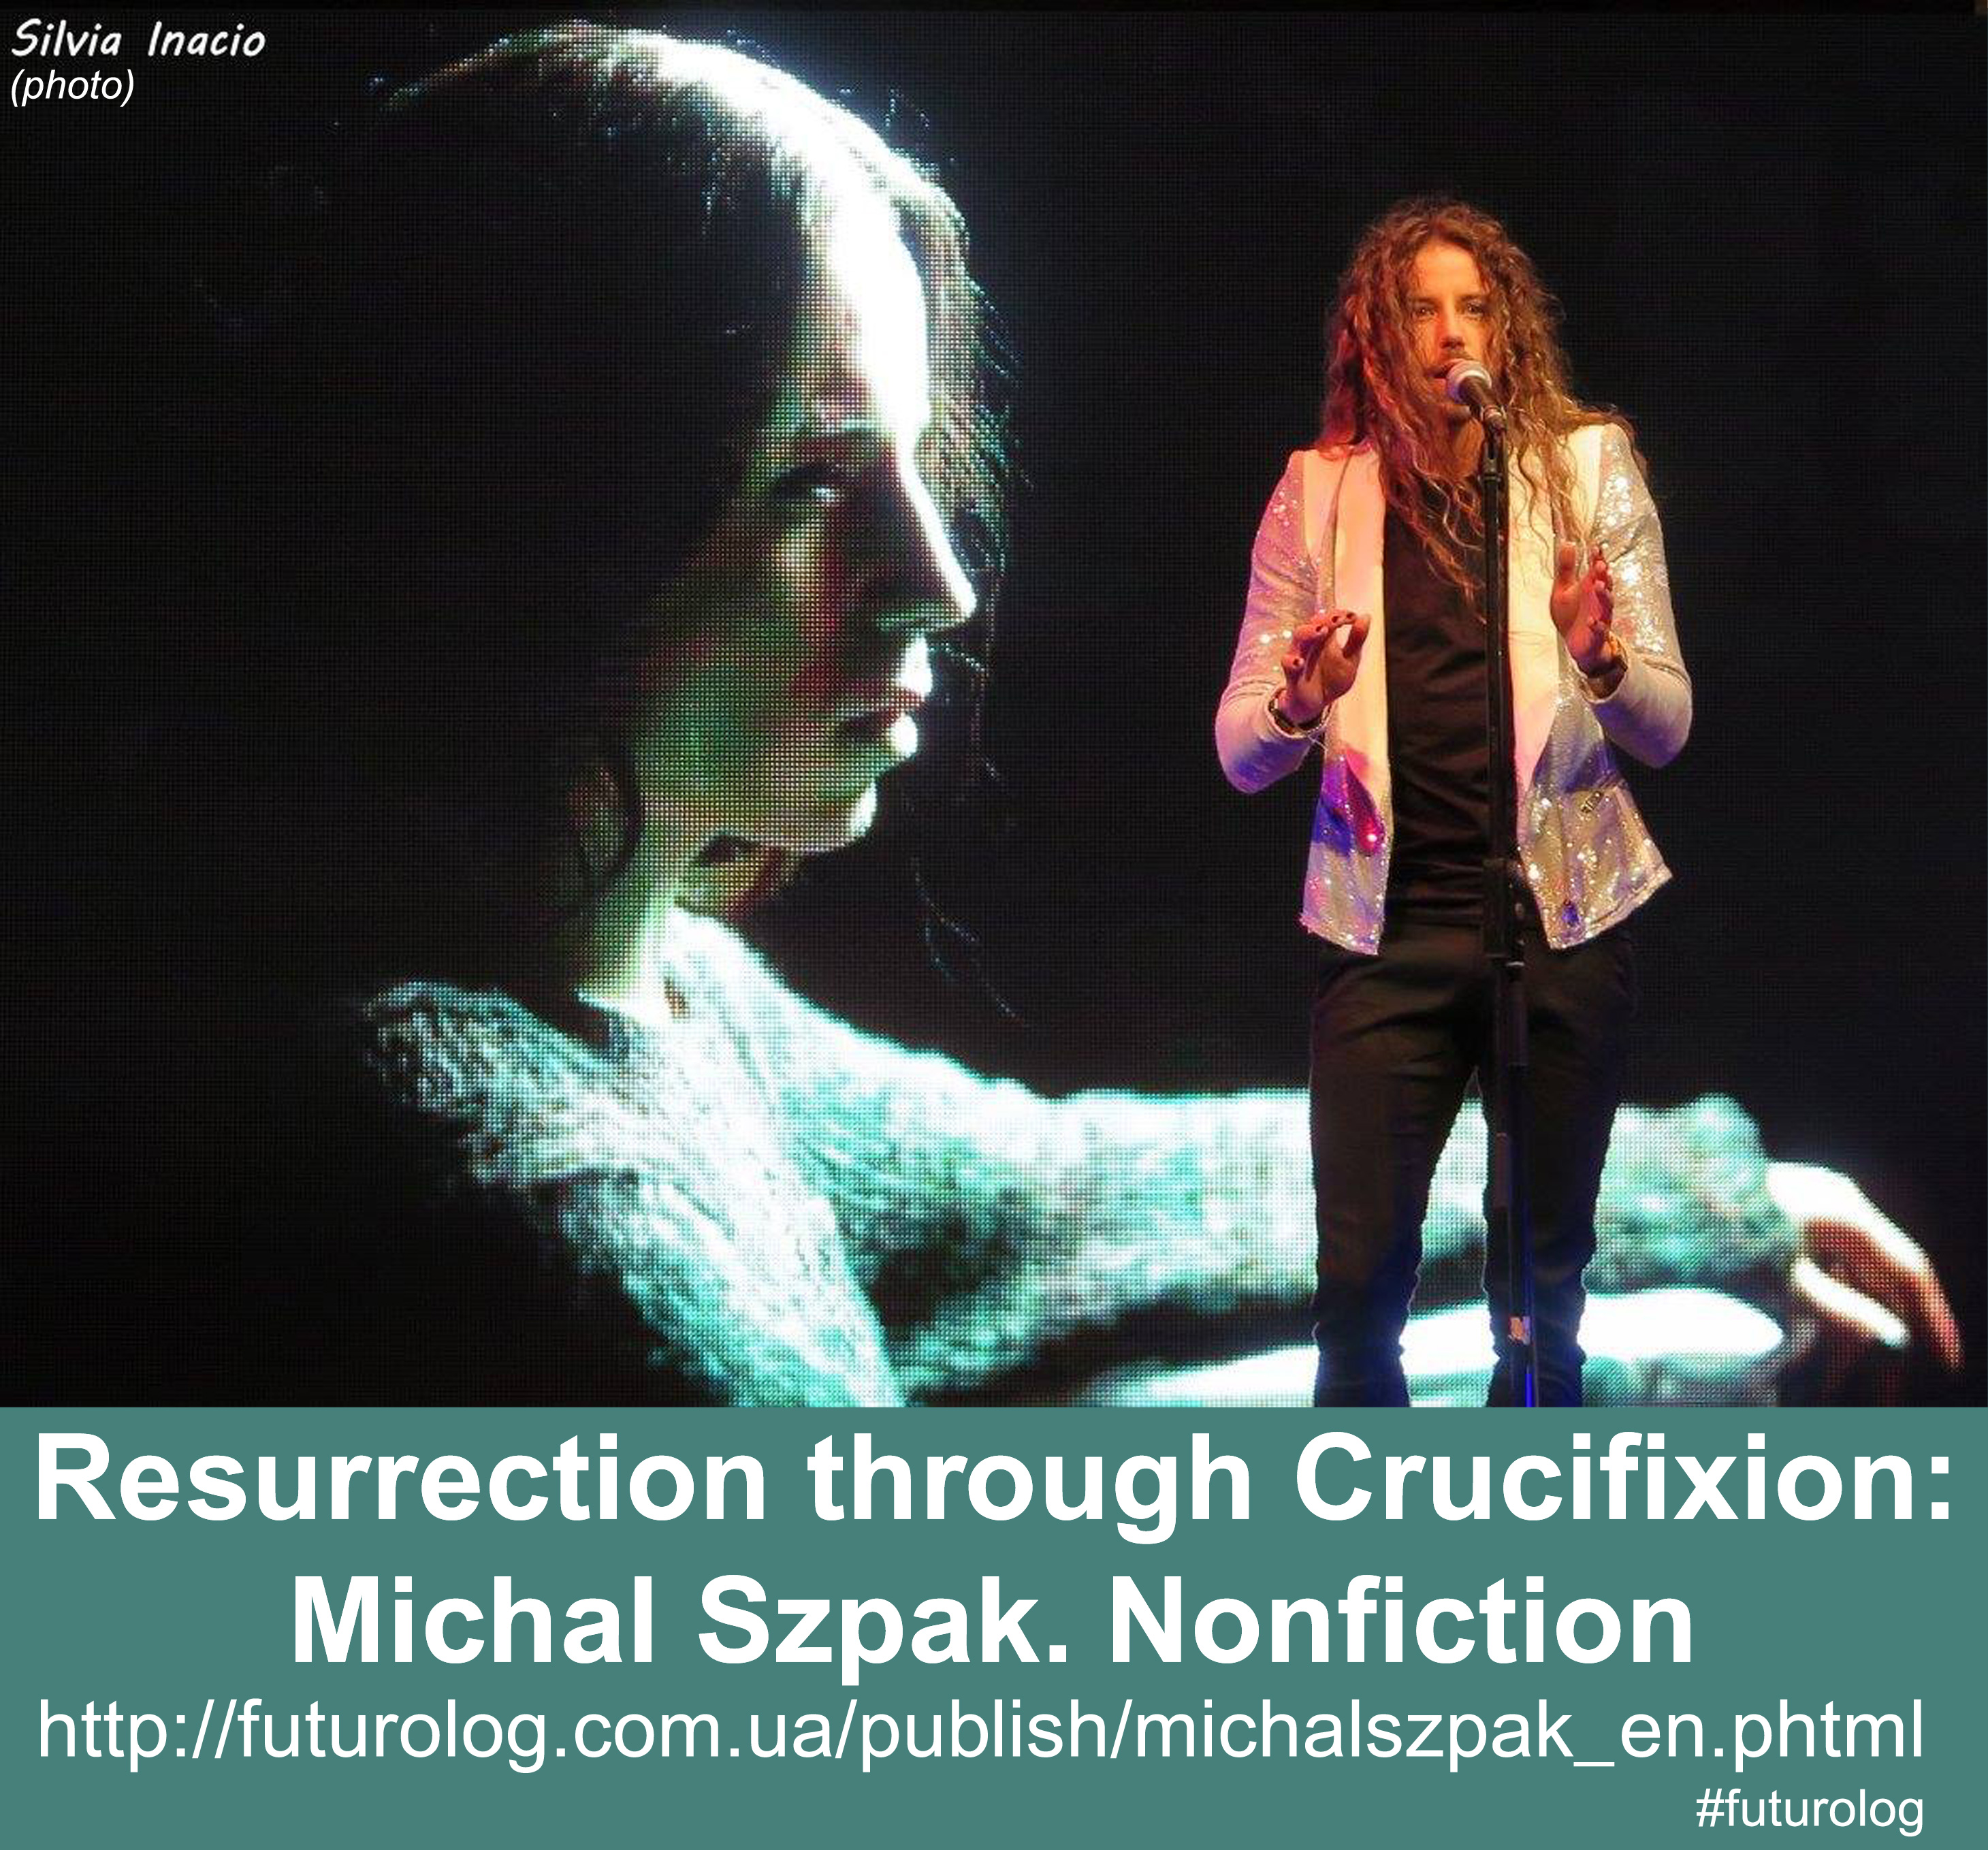 Michal Szpak. Resurrection through Crucifixion. Nonfiction Natalija Yudina Futurolog Михал Шпак Наталия Юдина Футуролог